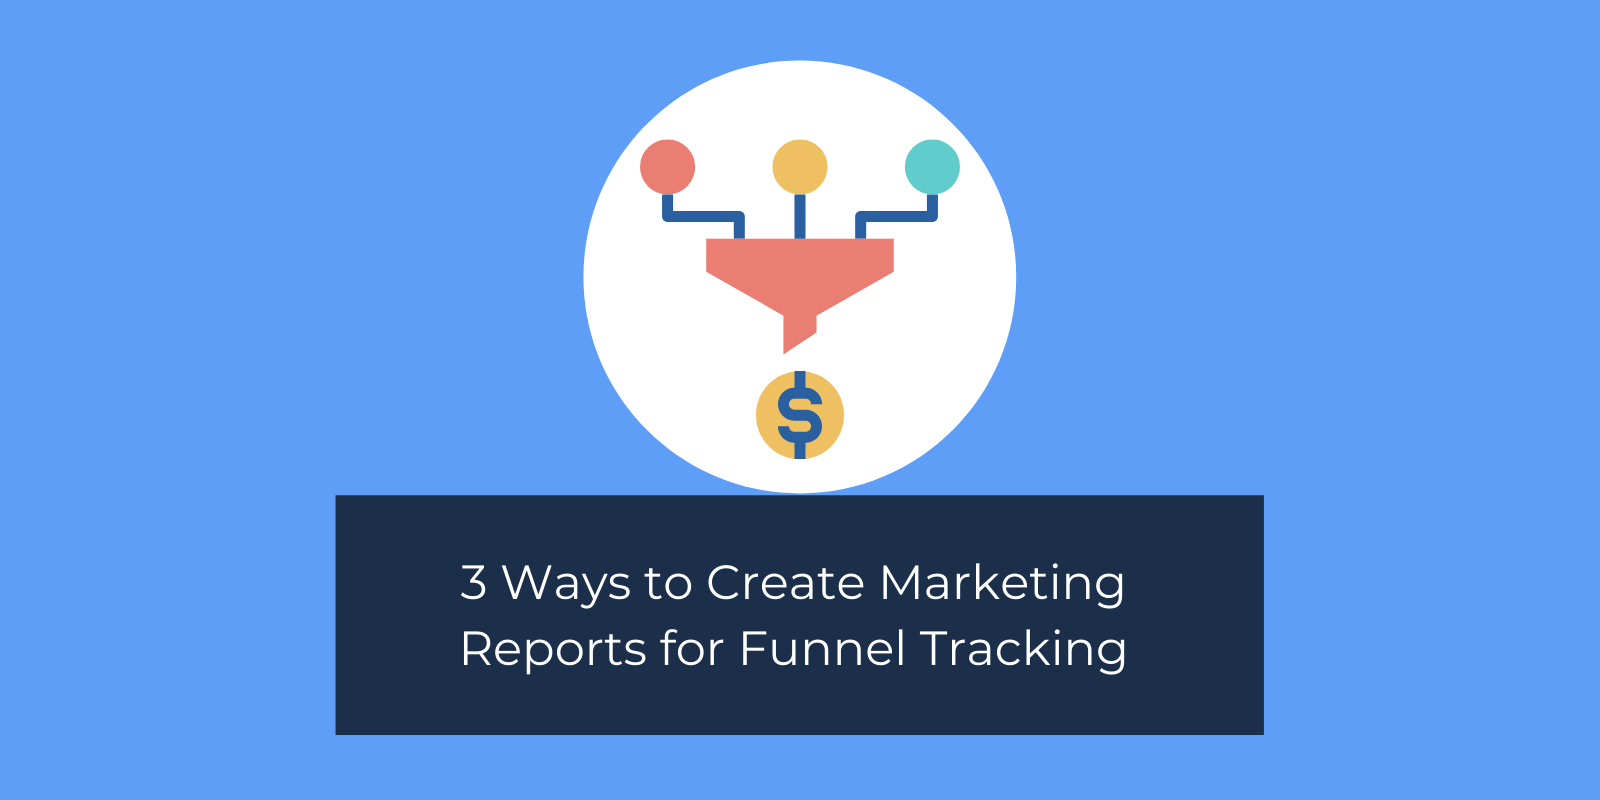 3 Ways to Create Marketing Reports for Funnel Tracking